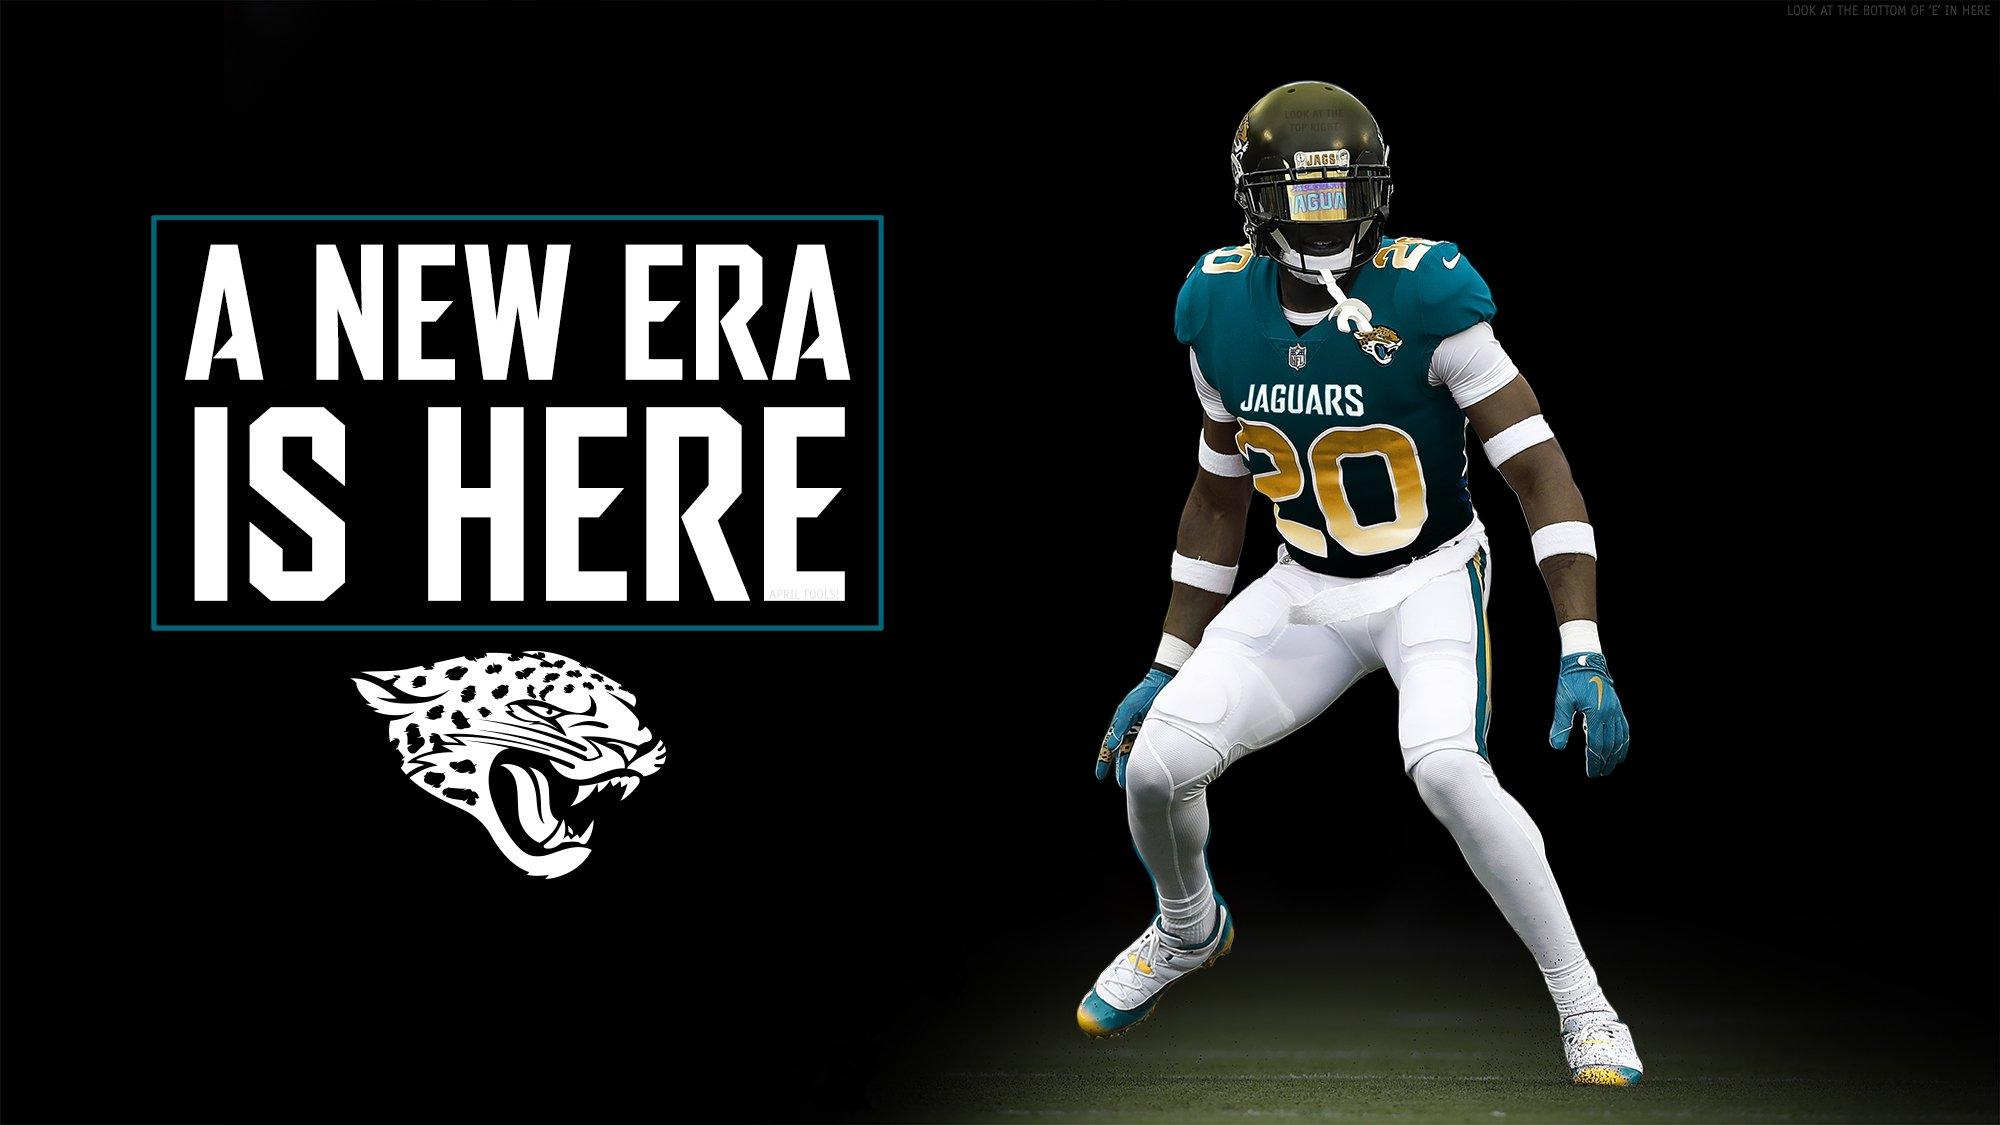 Jaguars' April Fools' Joke Gets Big Fan Response, National ...